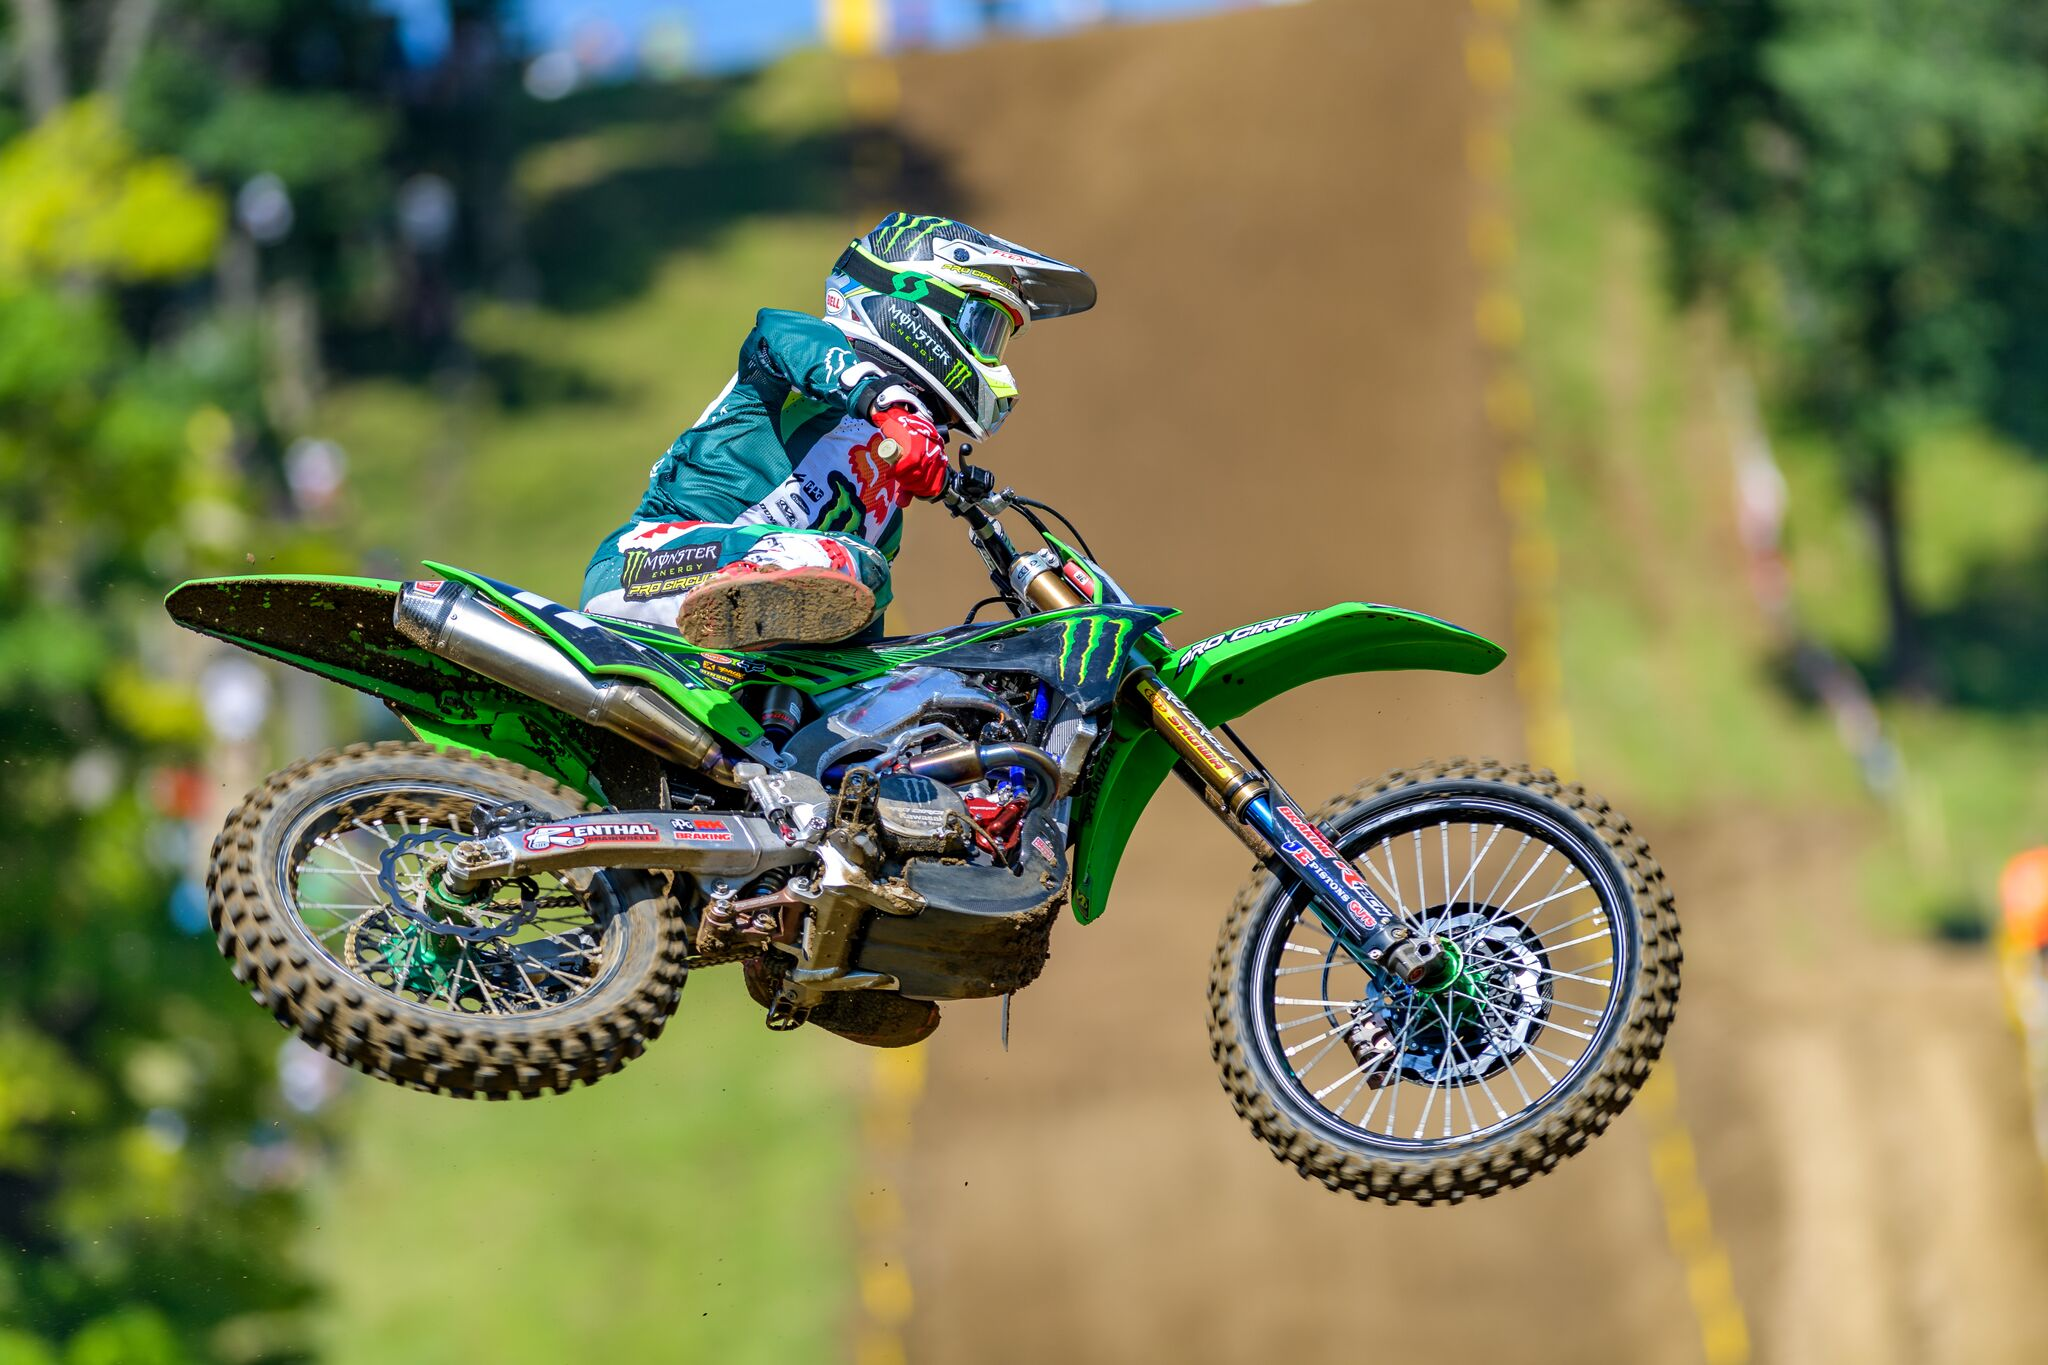 Monster Energy Pro Circuit Kawasaki Showcase Shining Moments En Route To Top-10 Finishes